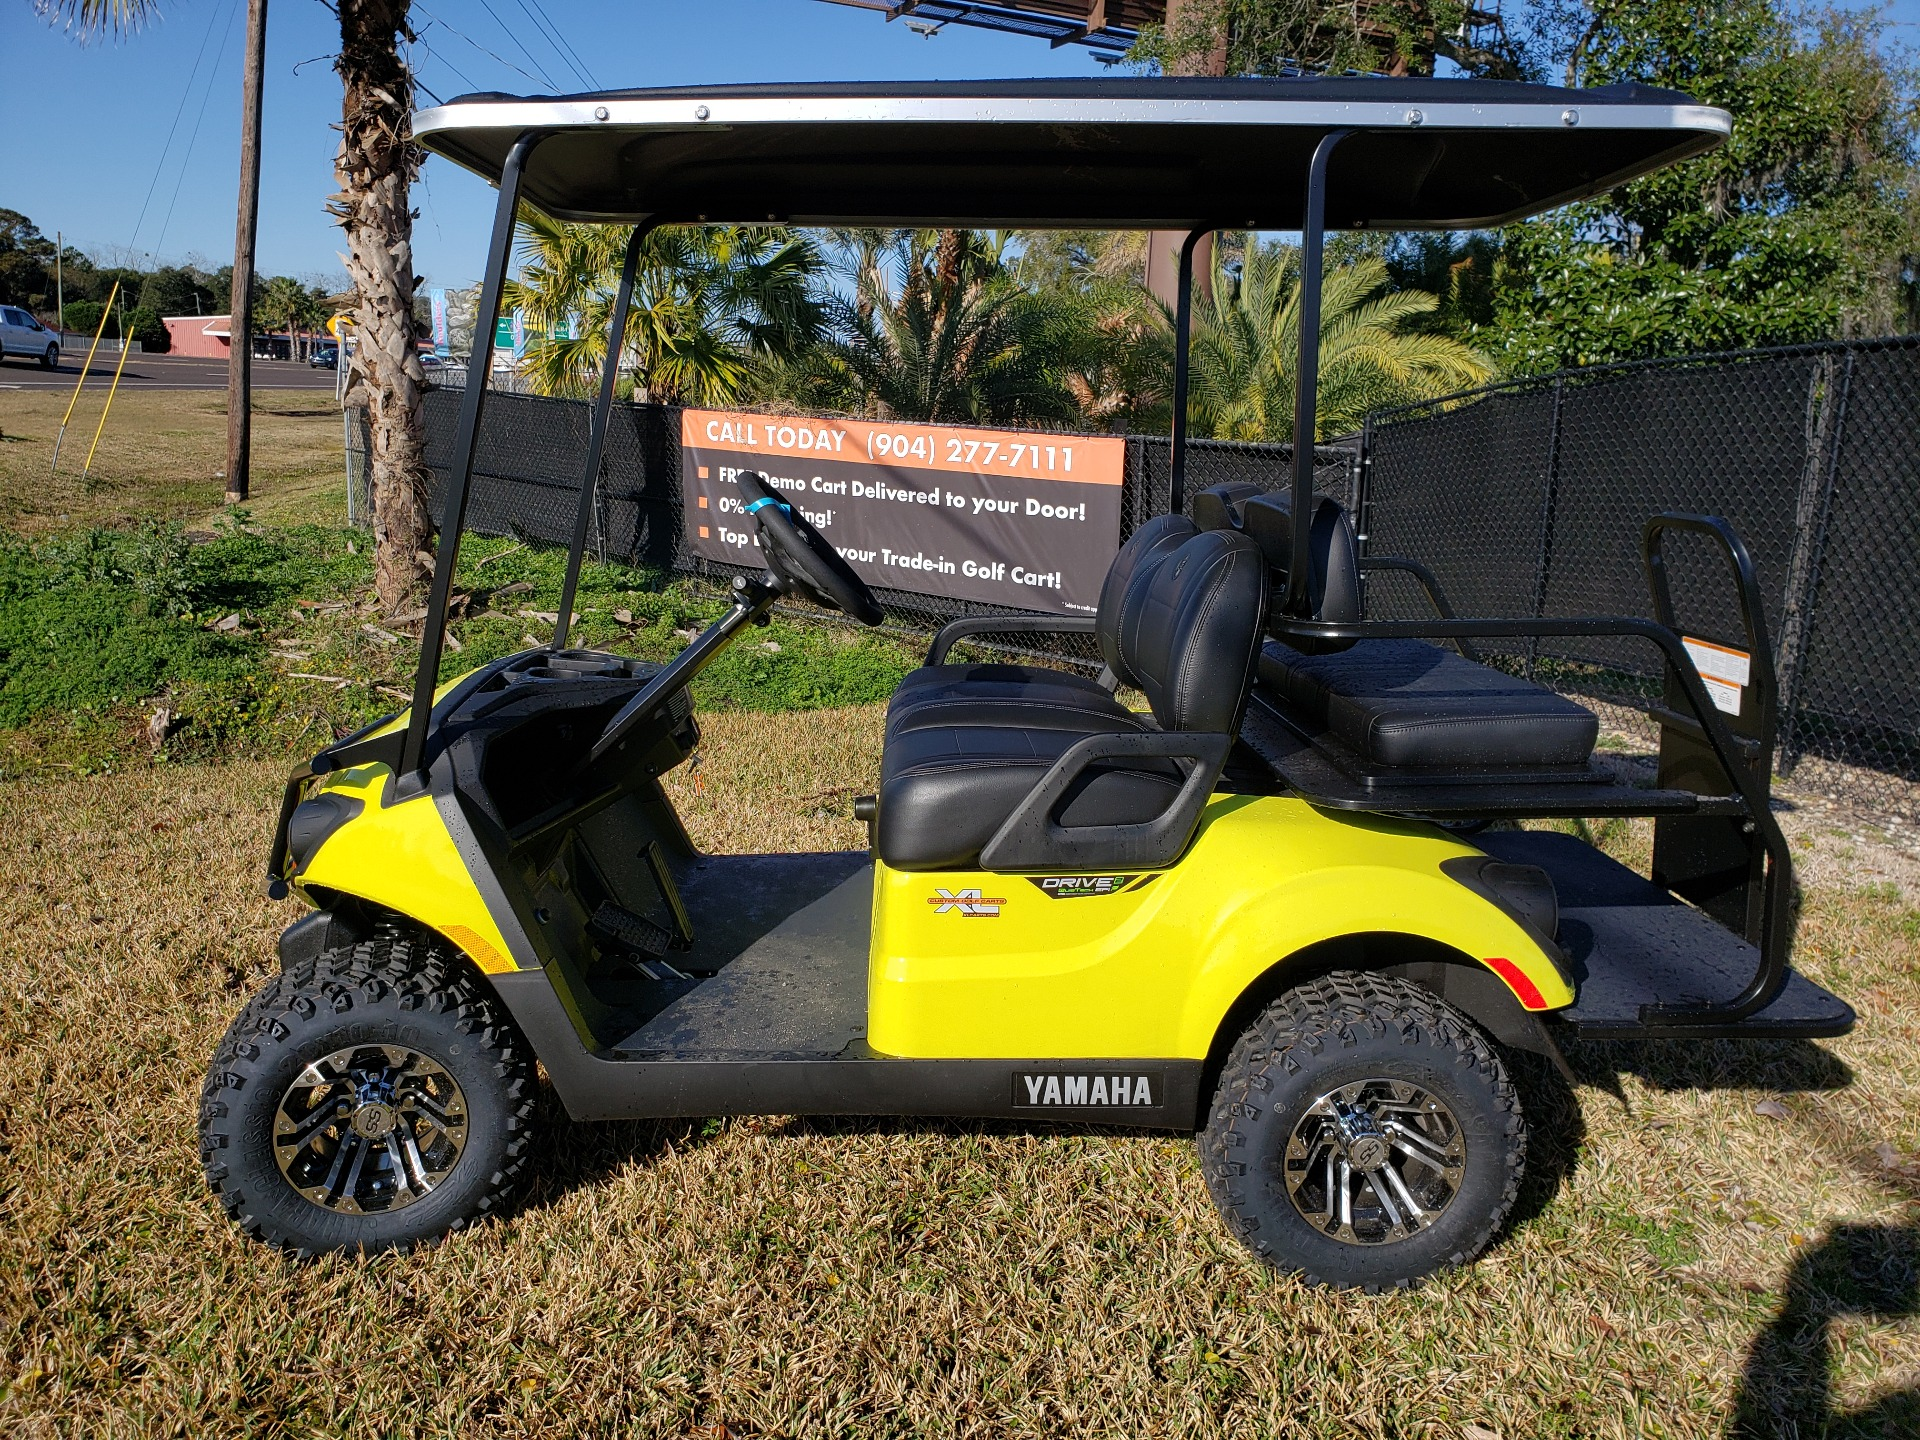 2021 Yamaha ADV SPORT EFI 2+2 in Fernandina Beach, Florida - Photo 1